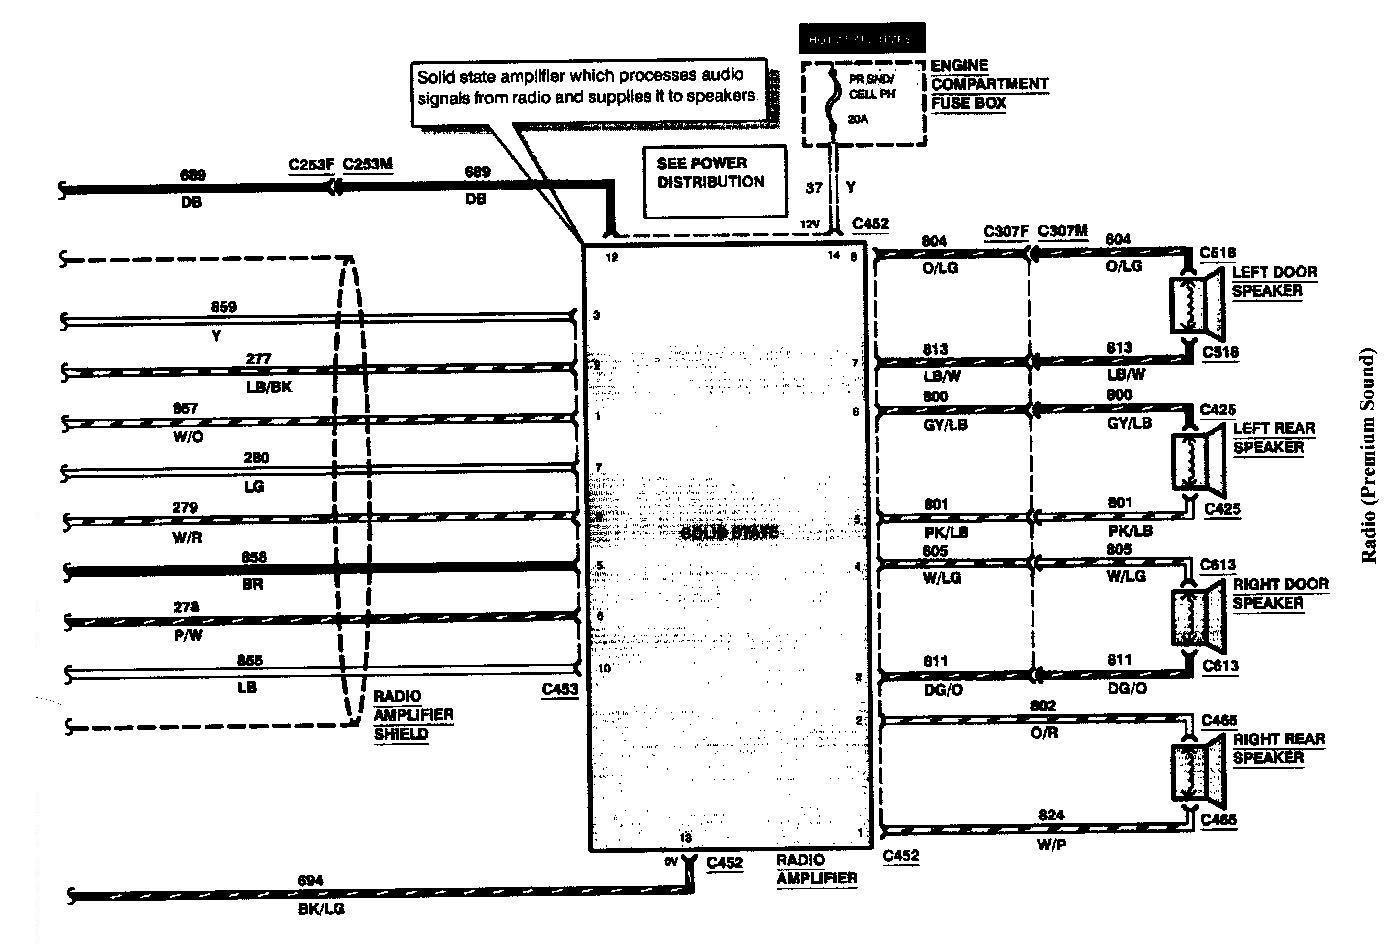 hight resolution of 89 lincoln engine wire harness diagram wiring diagram compilation 1989 lincoln town car engine diagram wiring schematic